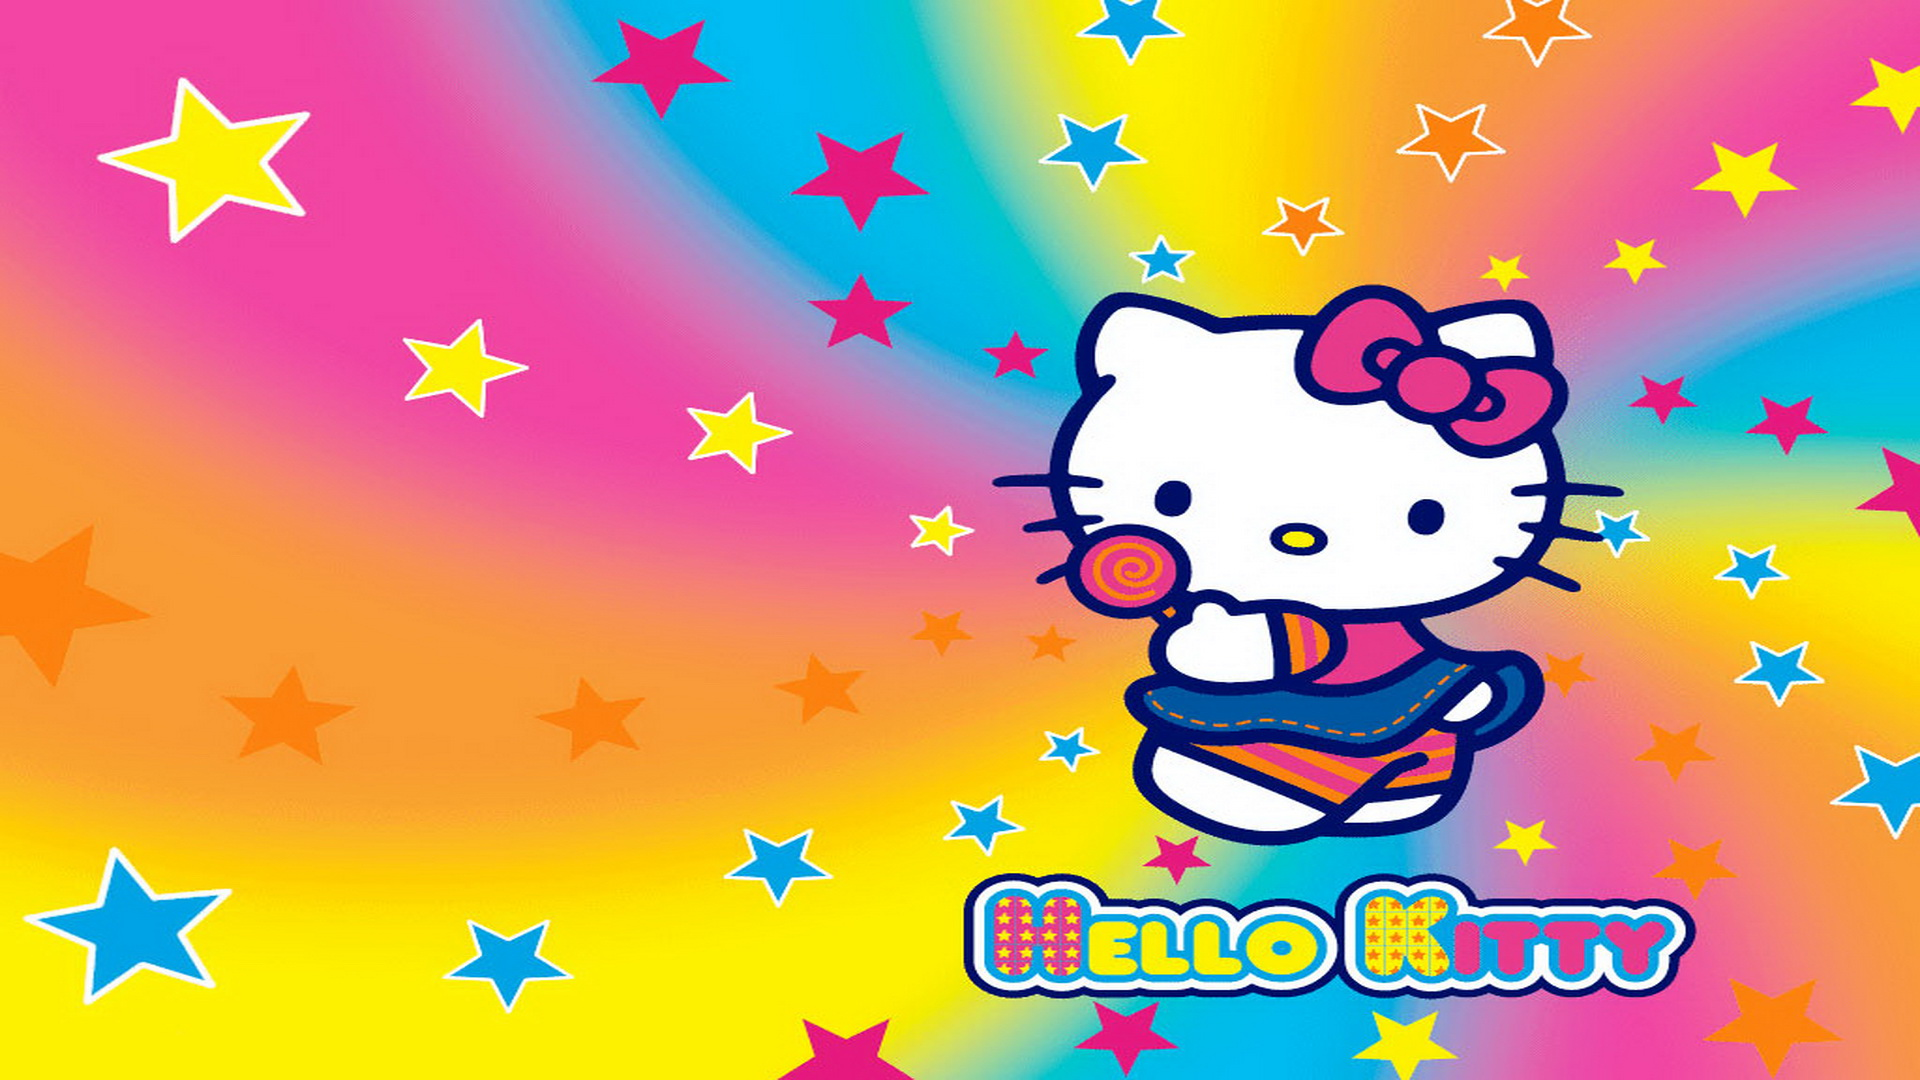 Free Download Hello Kitty Wallpapers Backgrounds Hd Desktop